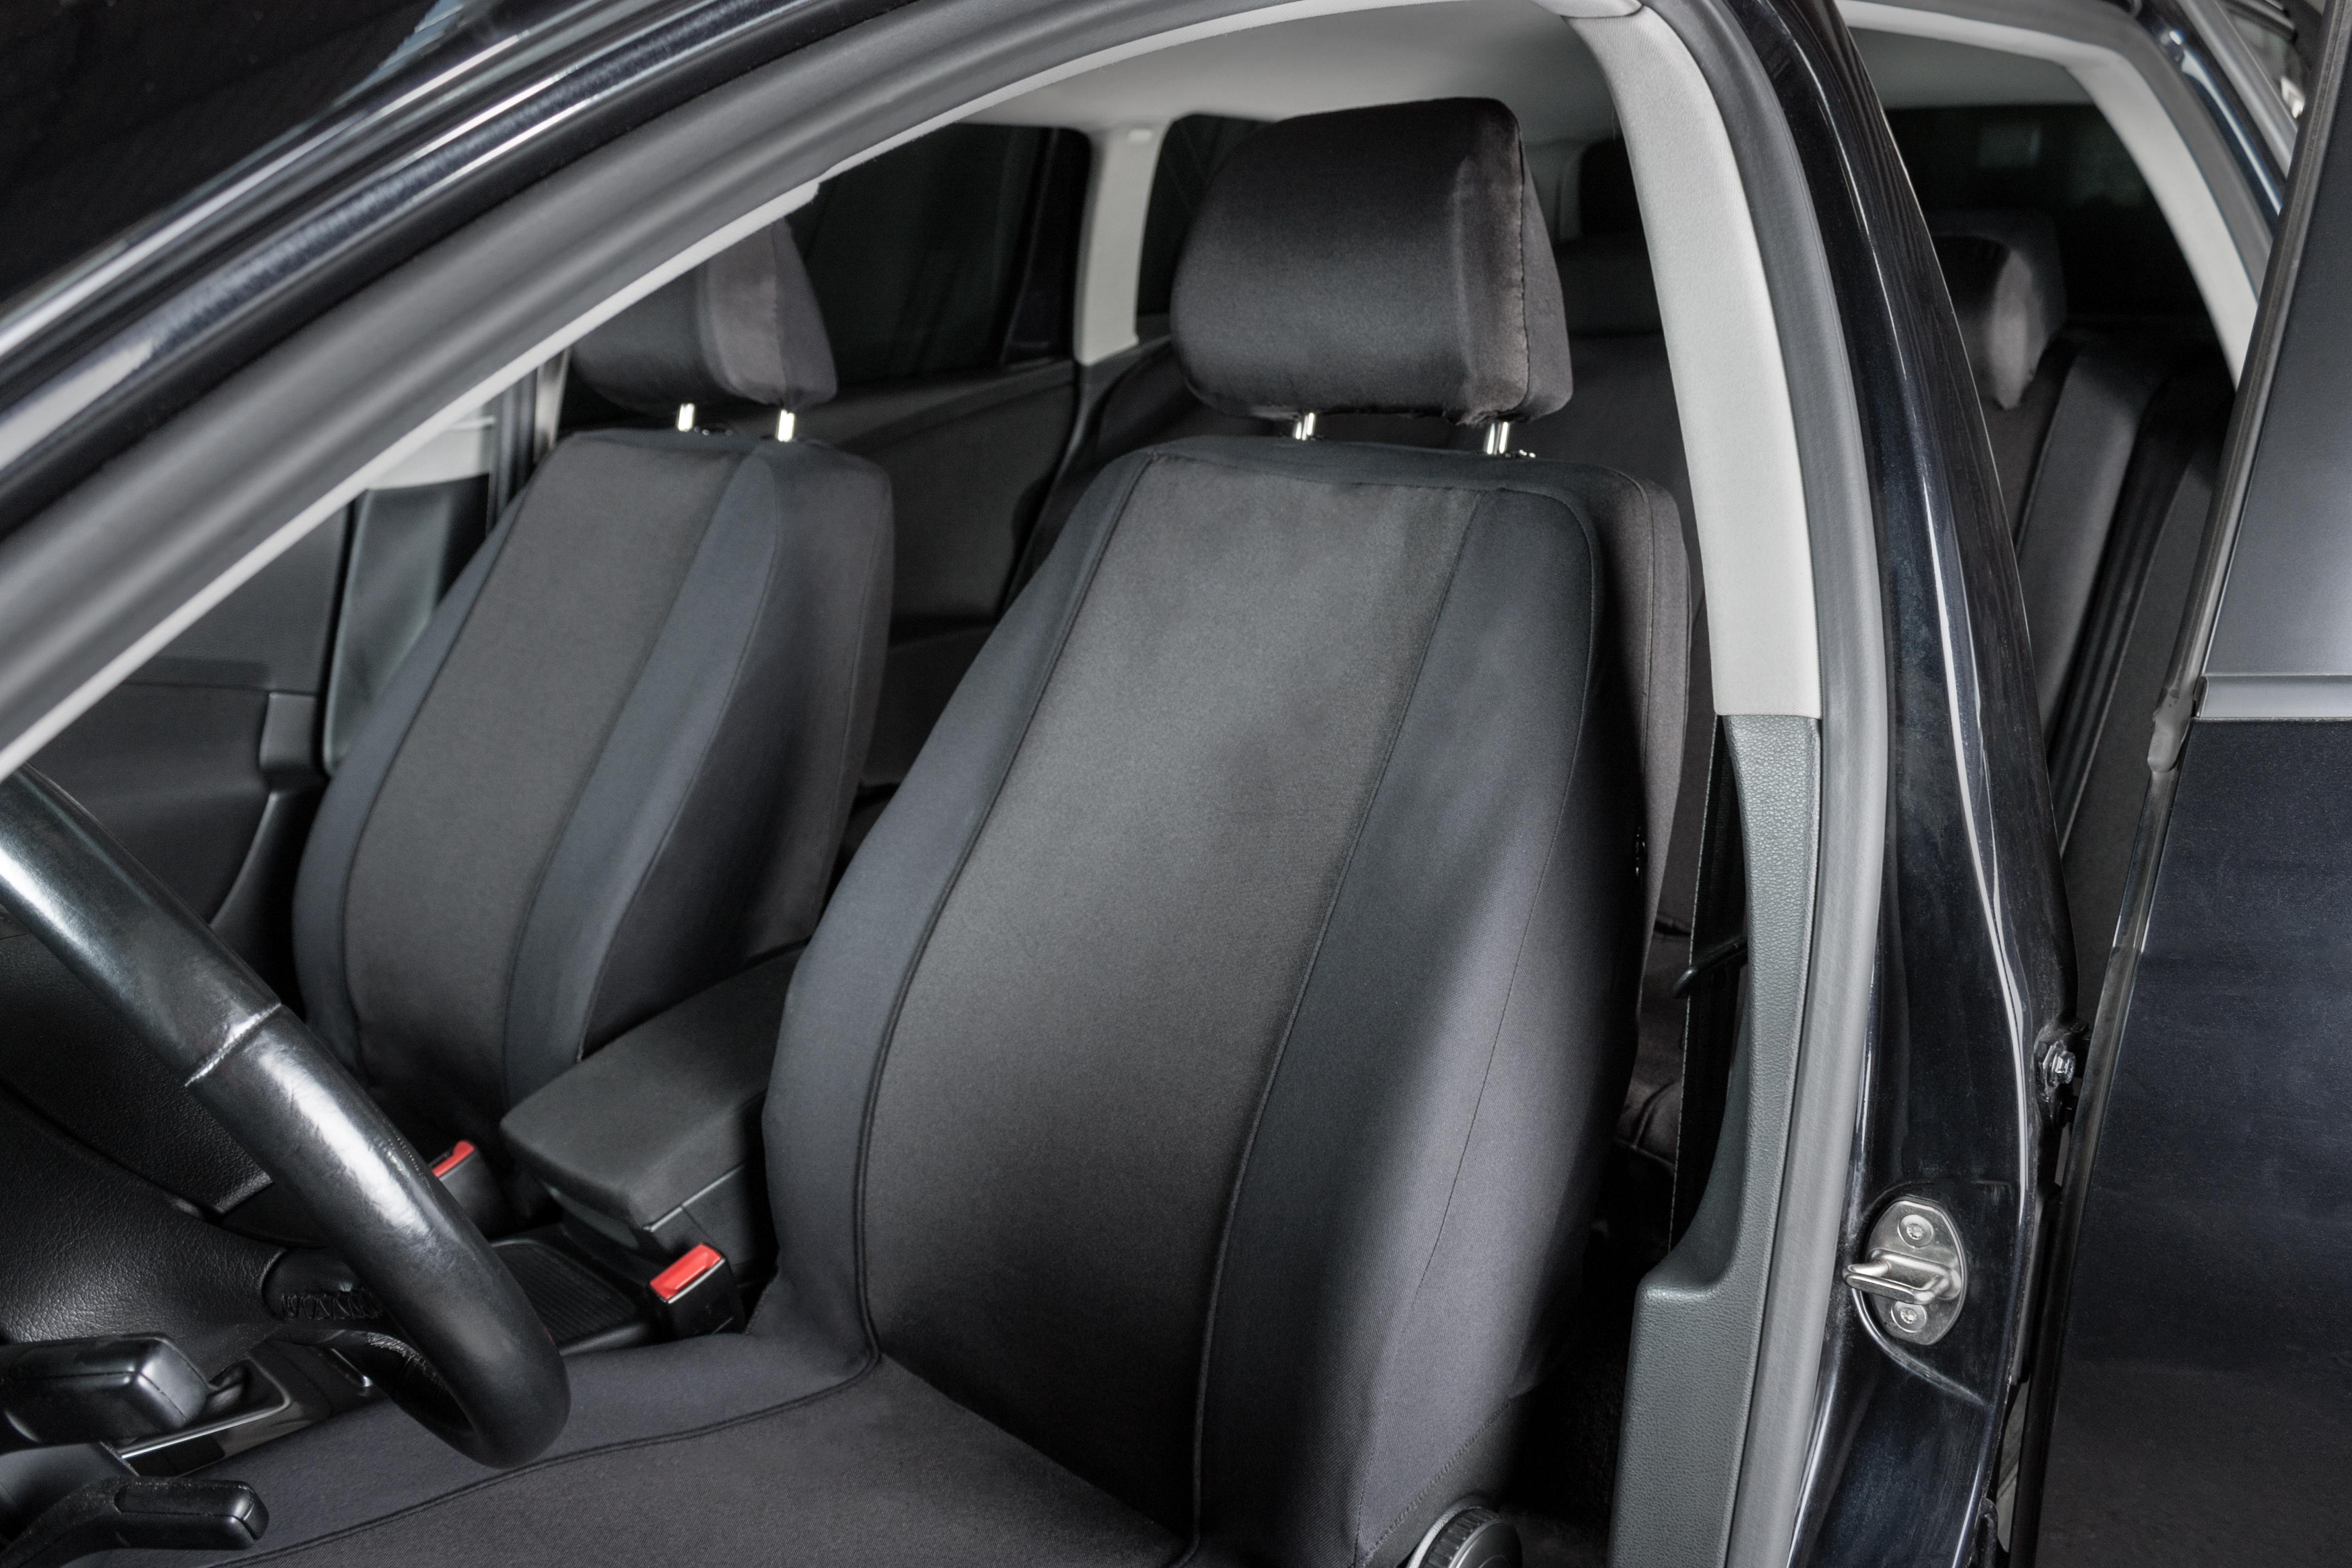 halfords front interior woven fabric car seat protector covers pair black 5054277257518 ebay. Black Bedroom Furniture Sets. Home Design Ideas